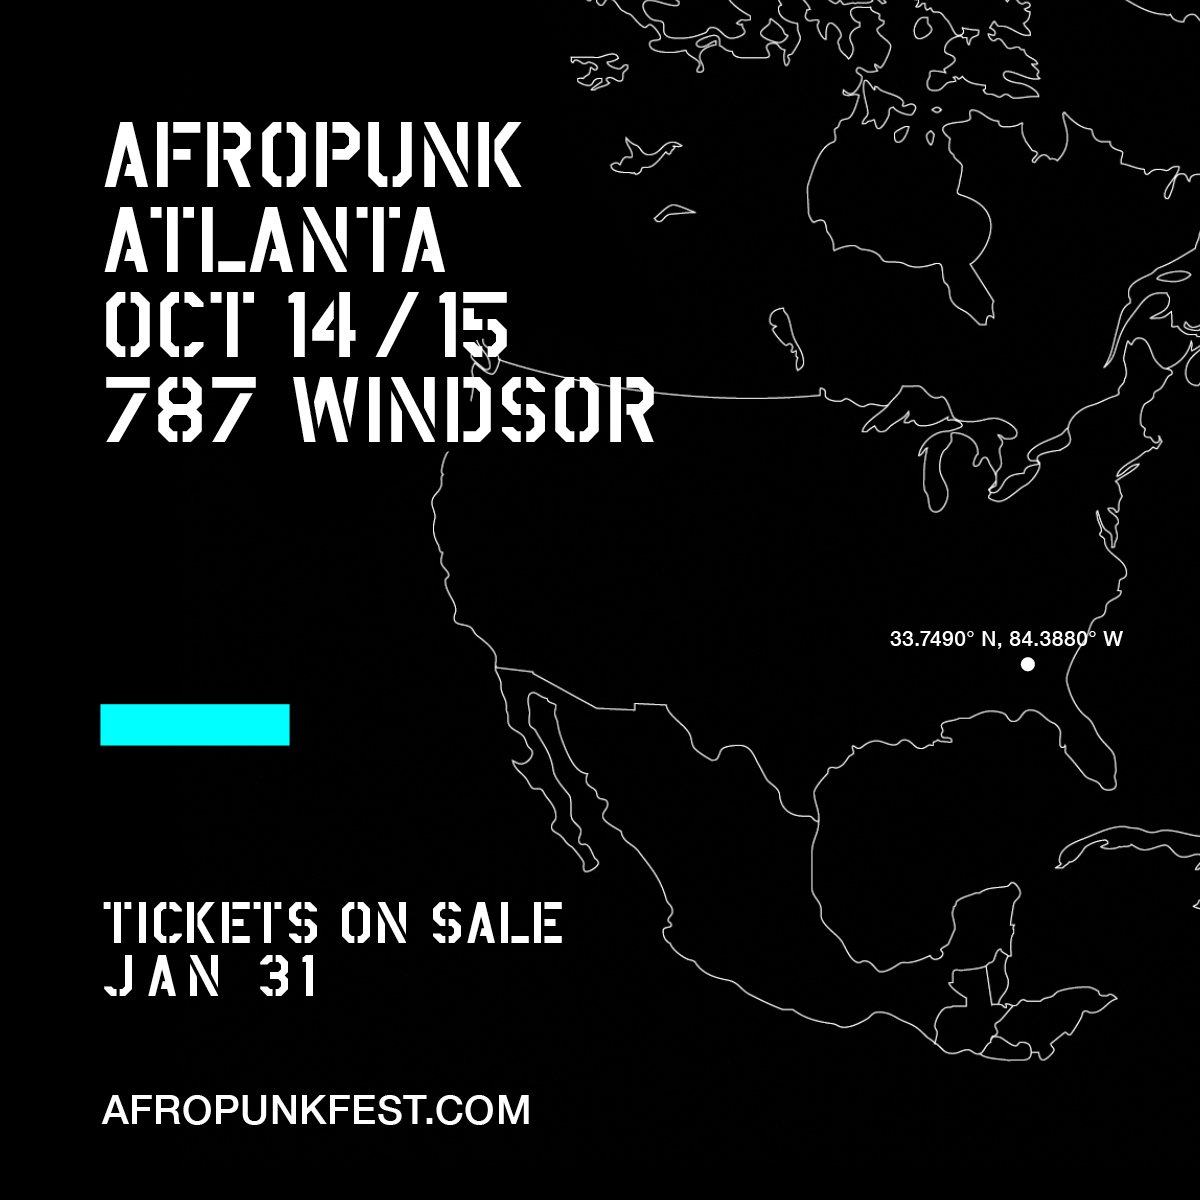 """TICKETS  Get your tickets to what The New York Times hails as """"the most multicultural festival in the US."""" With a mix of music, art, and politics, don't just join the party—join the movement.  http://afropunkfest.com/atlanta/tickets/"""